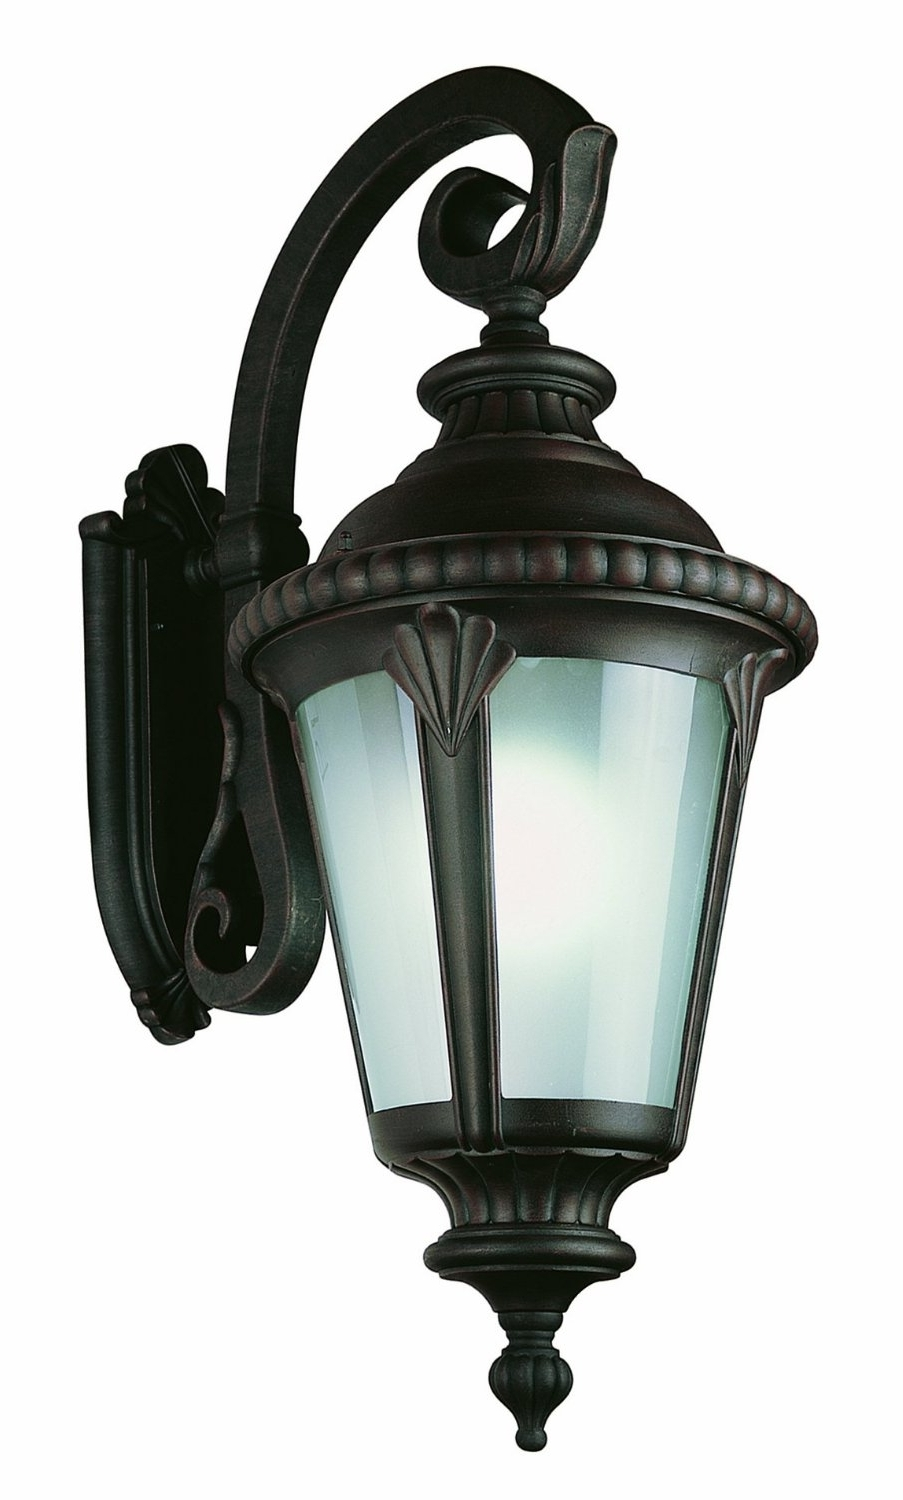 Most Recently Released Outdoor Wall Lantern By Transglobe Lighting Inside Lighting & Lamps: Trans Globe Lighting 4504 Bk 3 Light Post Lantern (View 19 of 20)